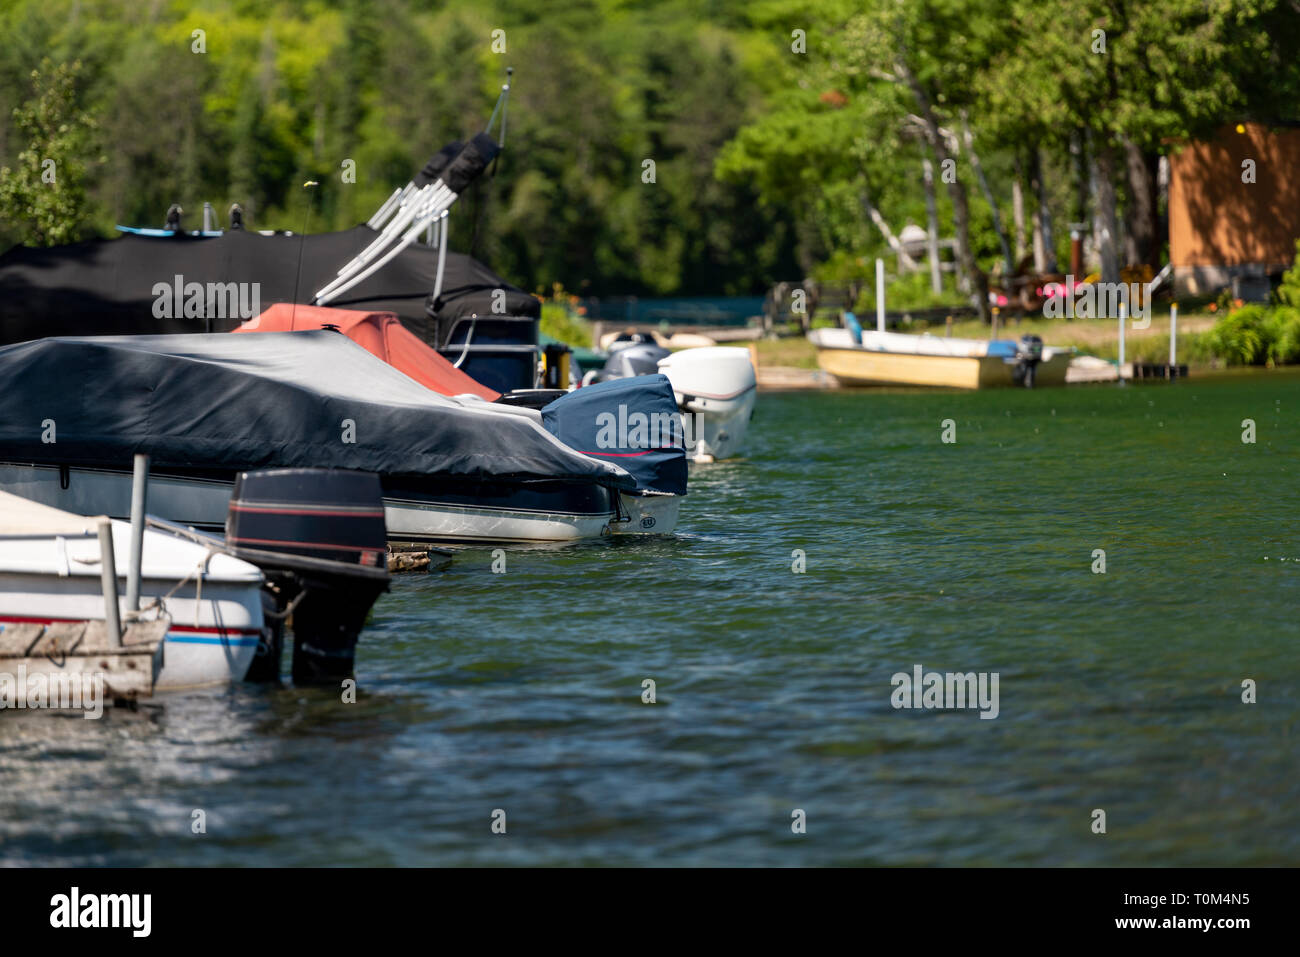 Motorboats docked on a lake in Ontario Canada's Cottage Country on a summer afternoon. Stock Photo